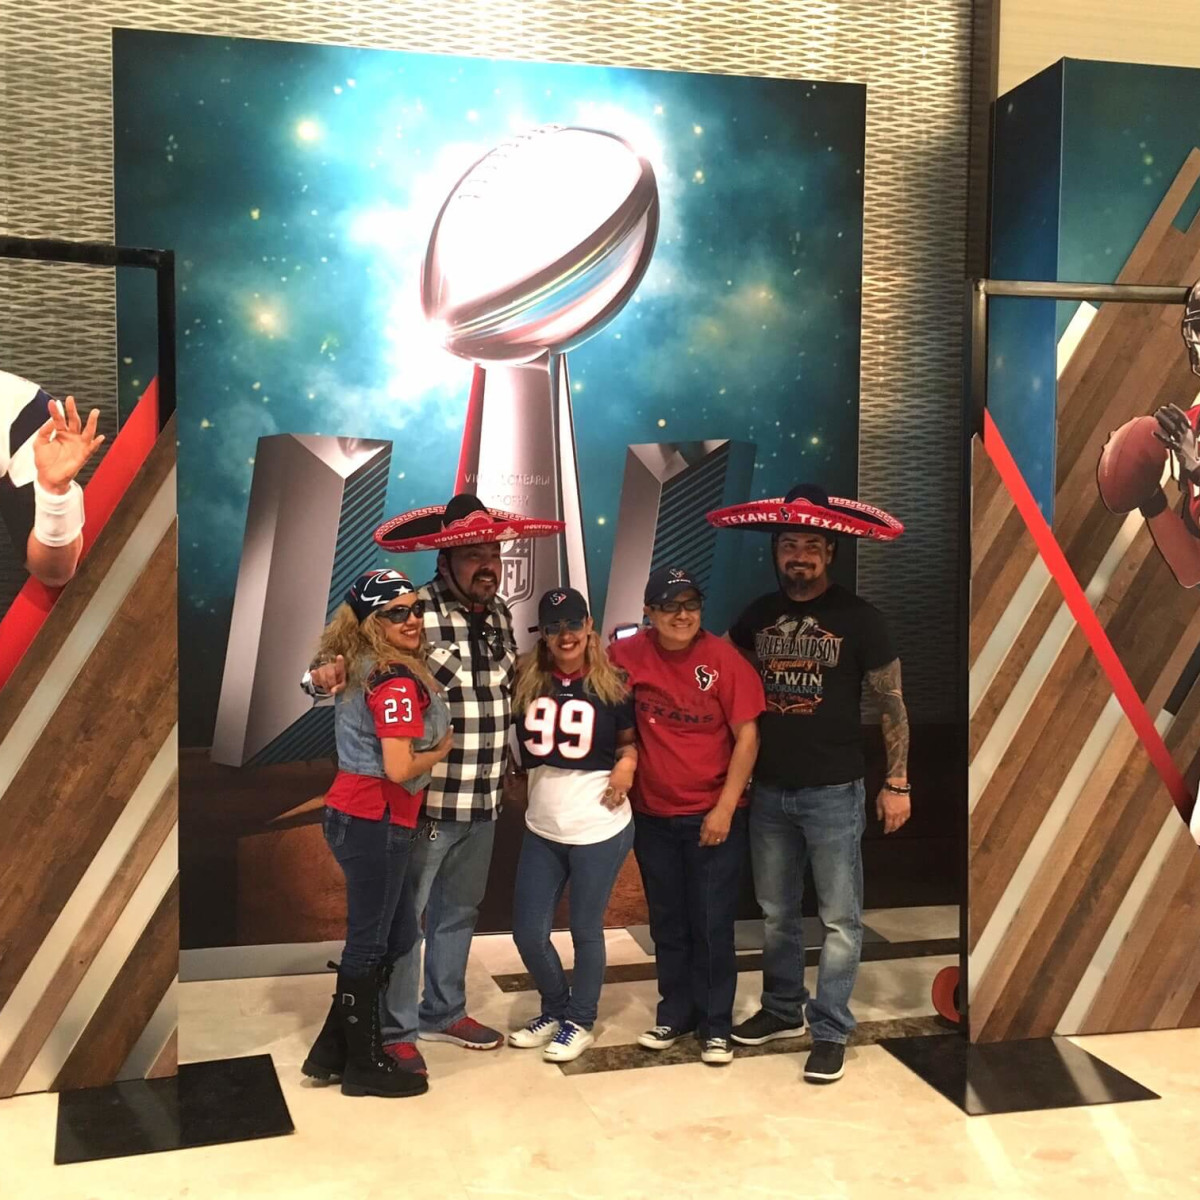 Super Bowl fans posing at Marriott Marquis hotel